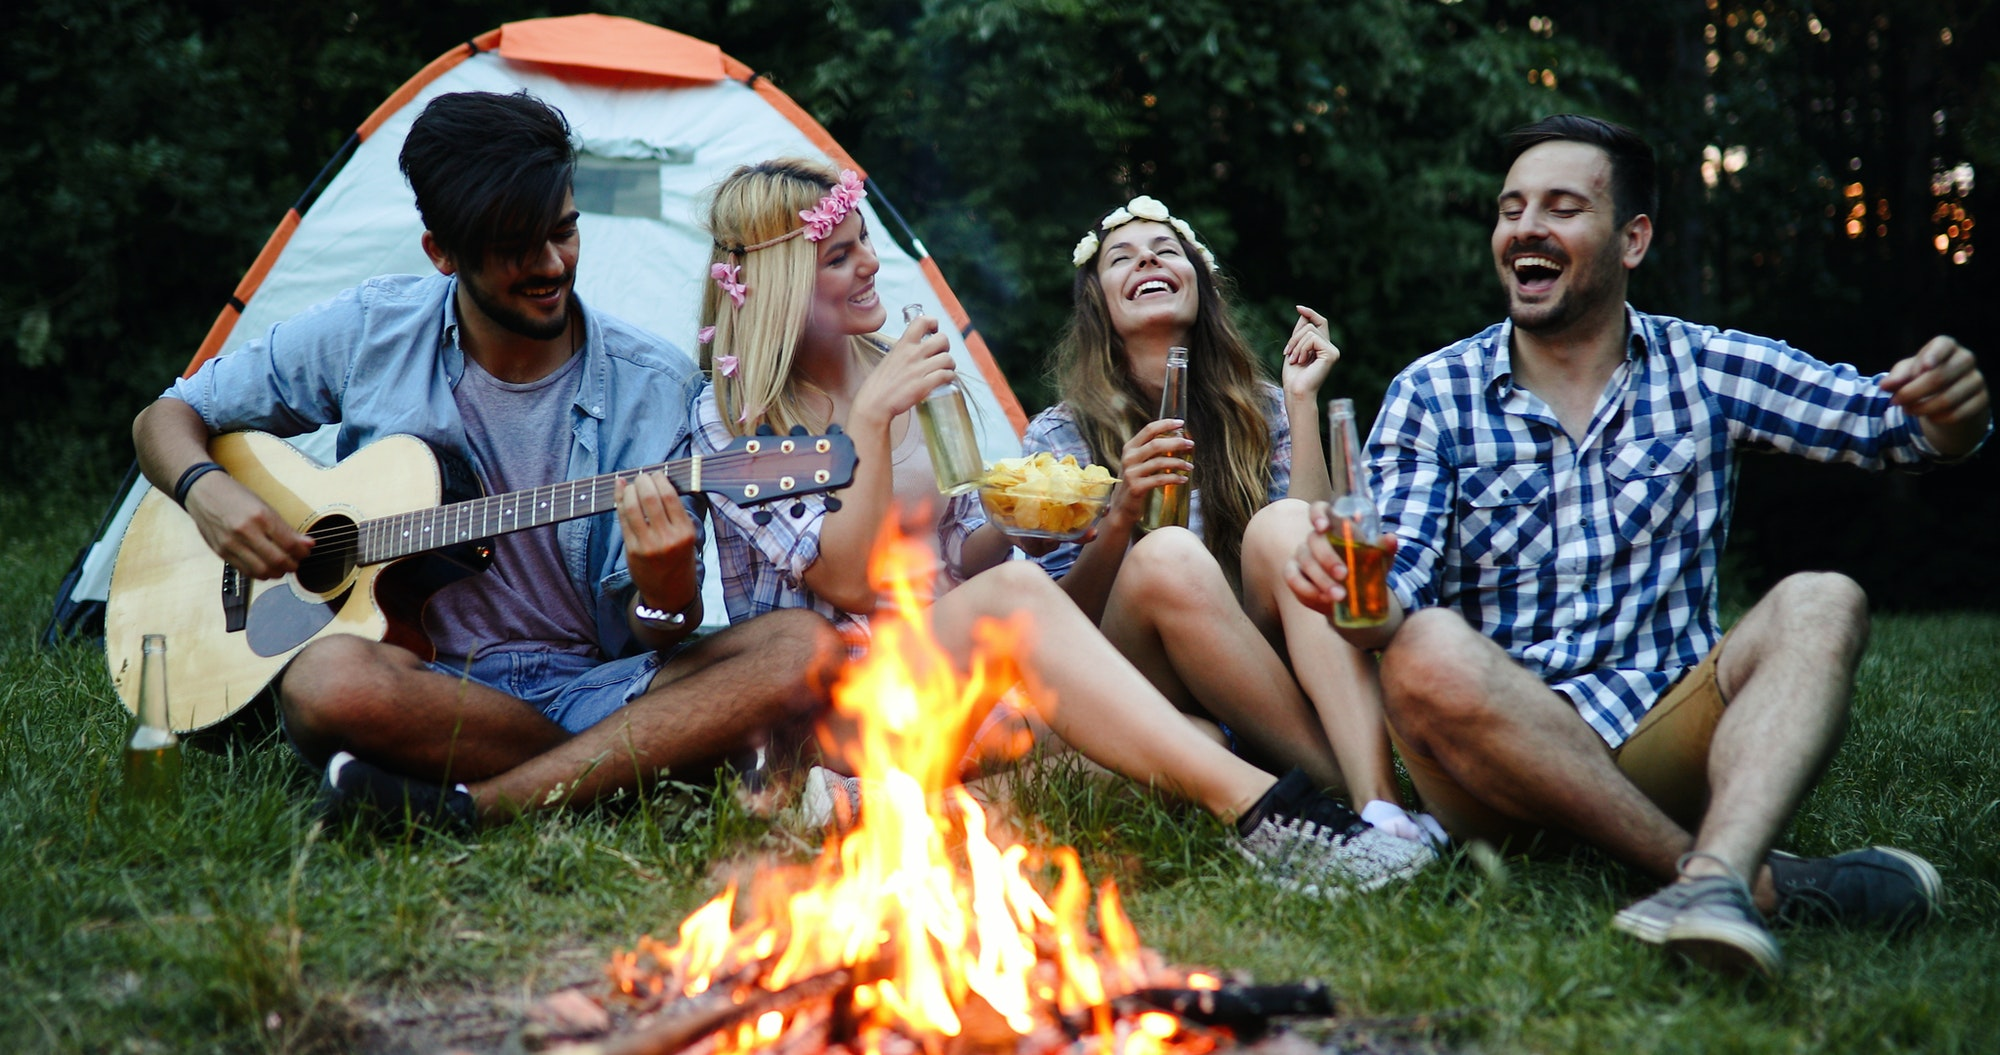 8 Great Tips For Drinking While Camping